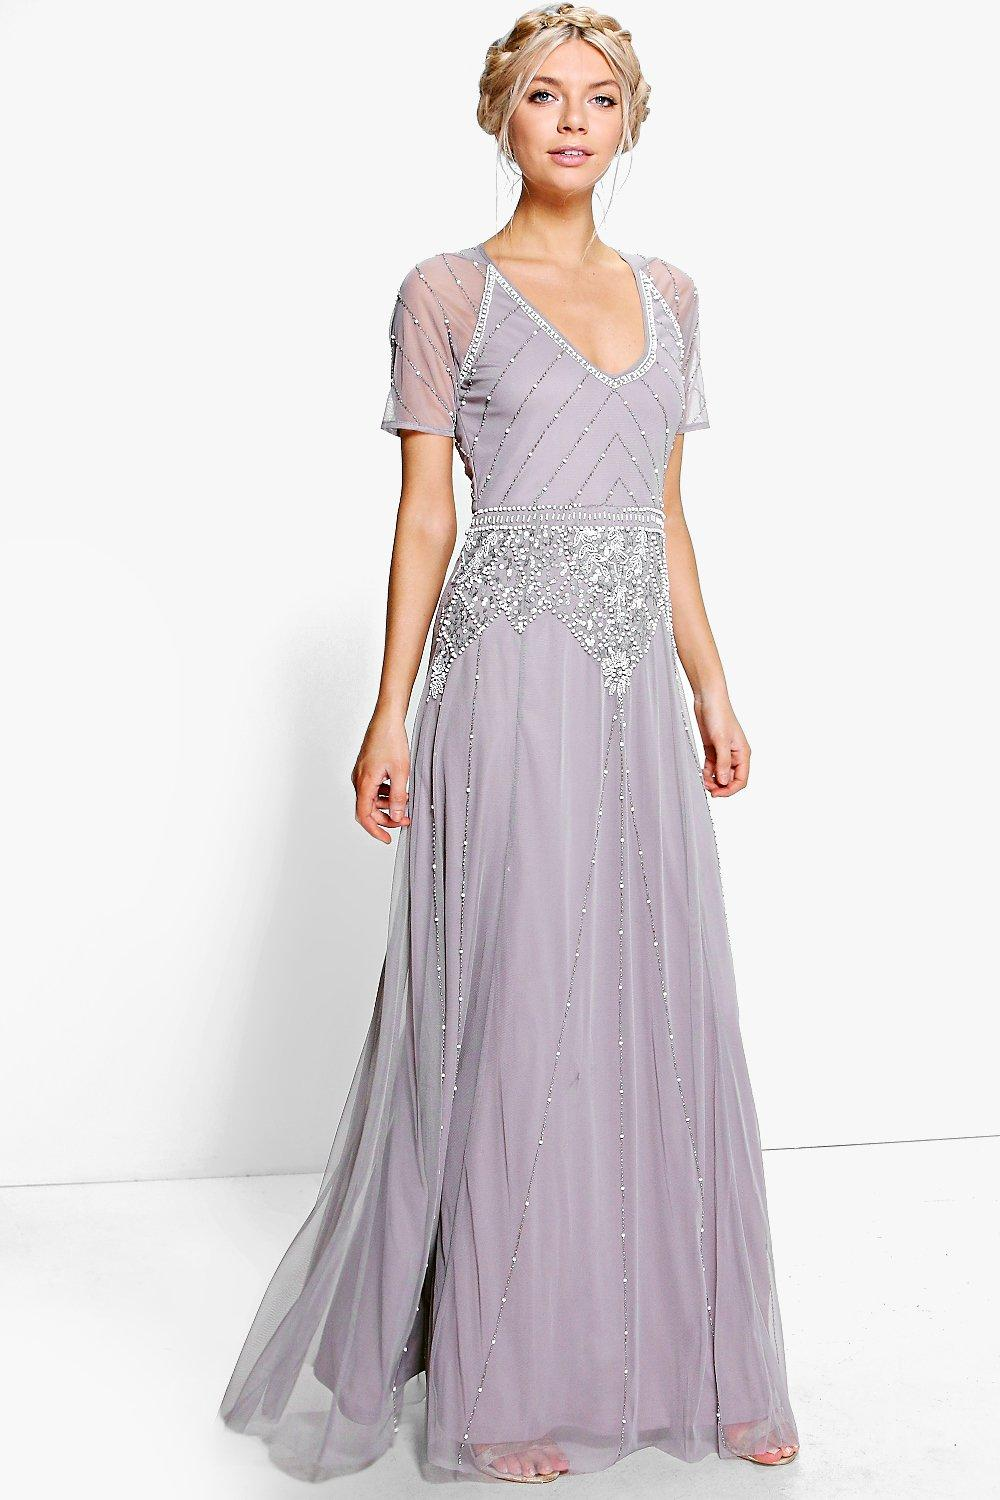 Downton Abbey Inspired Dresses Boutique Beaded Cap Sleeve Maxi Dress  AT vintagedancer.com